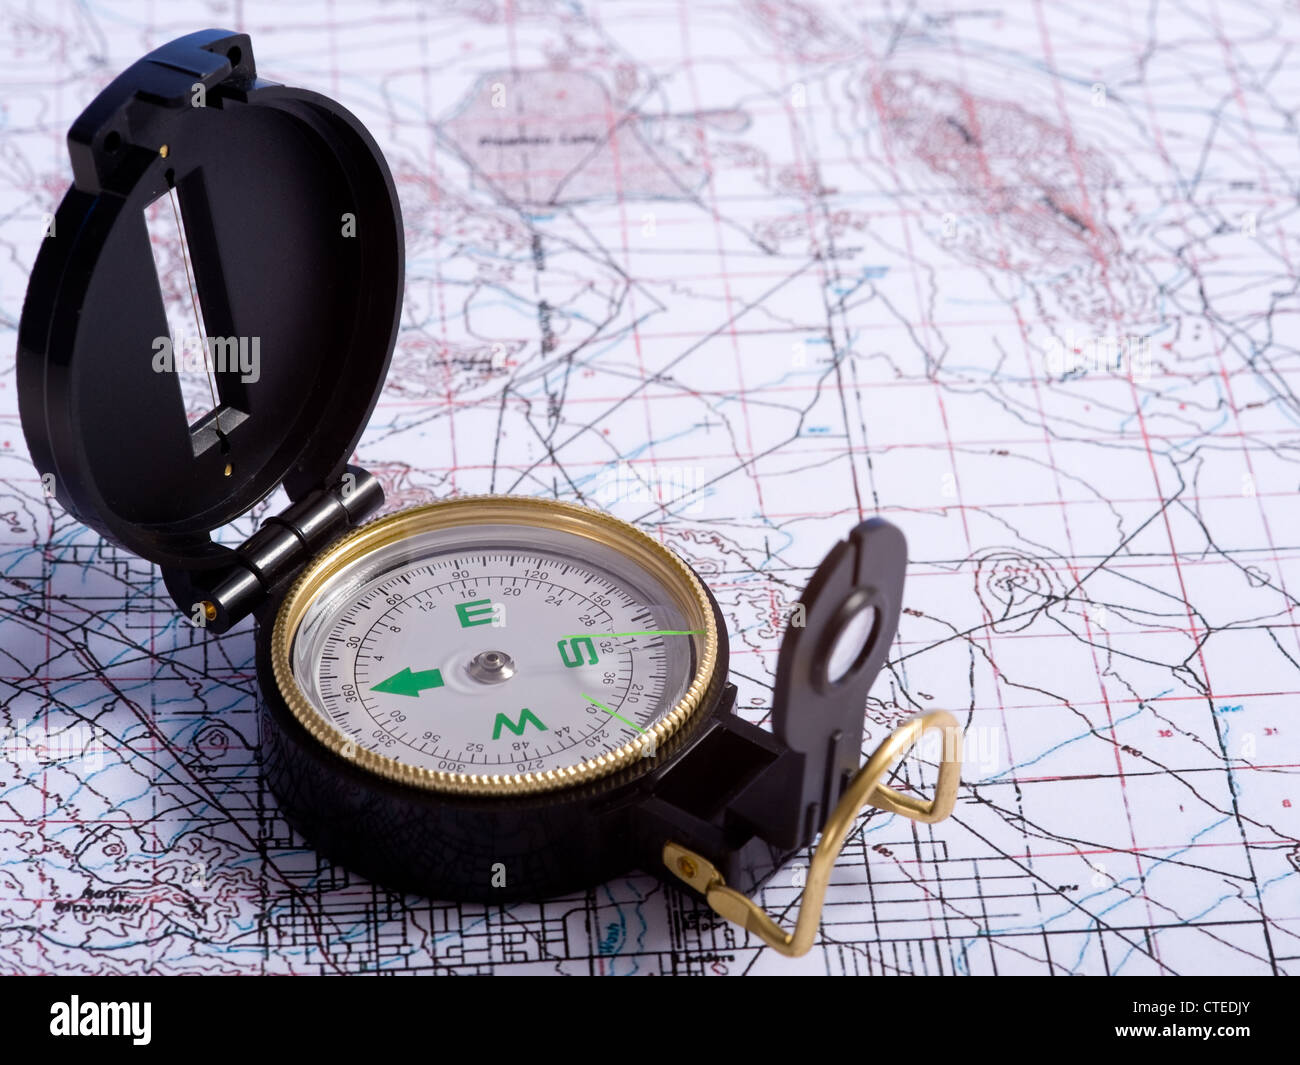 A black engineer's compass lying on top of a topographical map - Stock Image